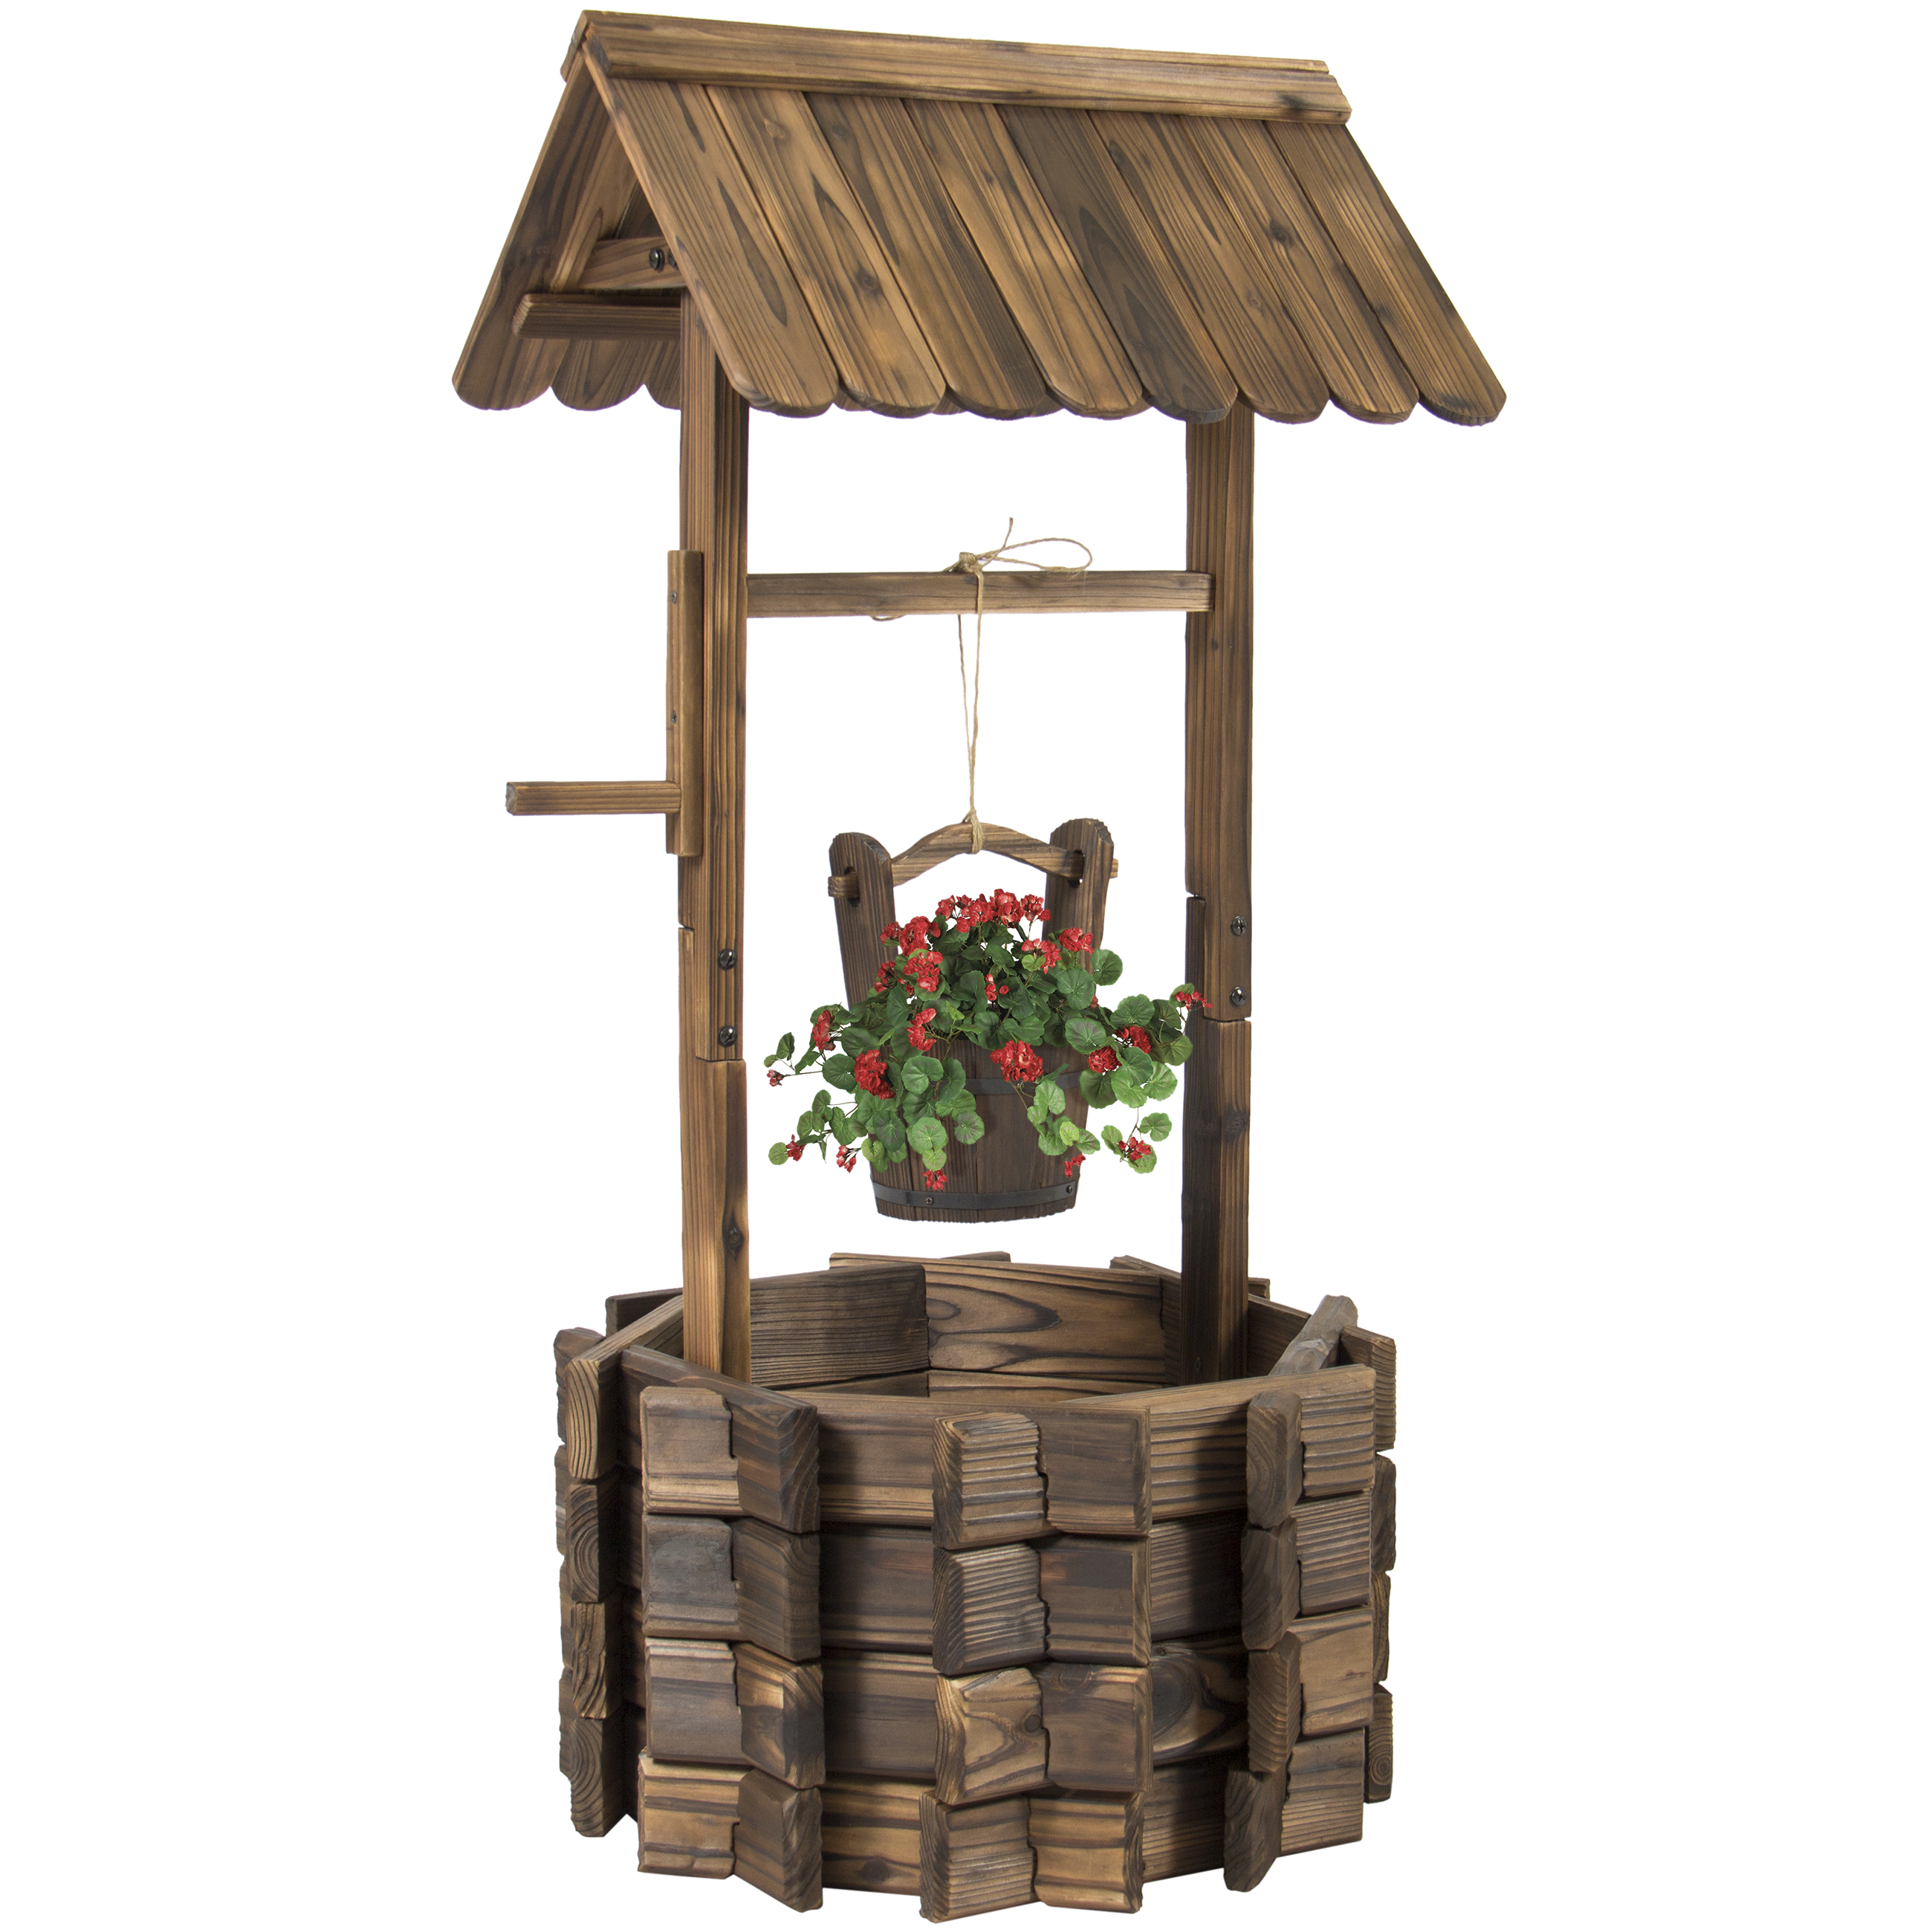 Wooden Wishing Well Bucket Flower Planter Patio Garden Outdoor Home Decor by SKY